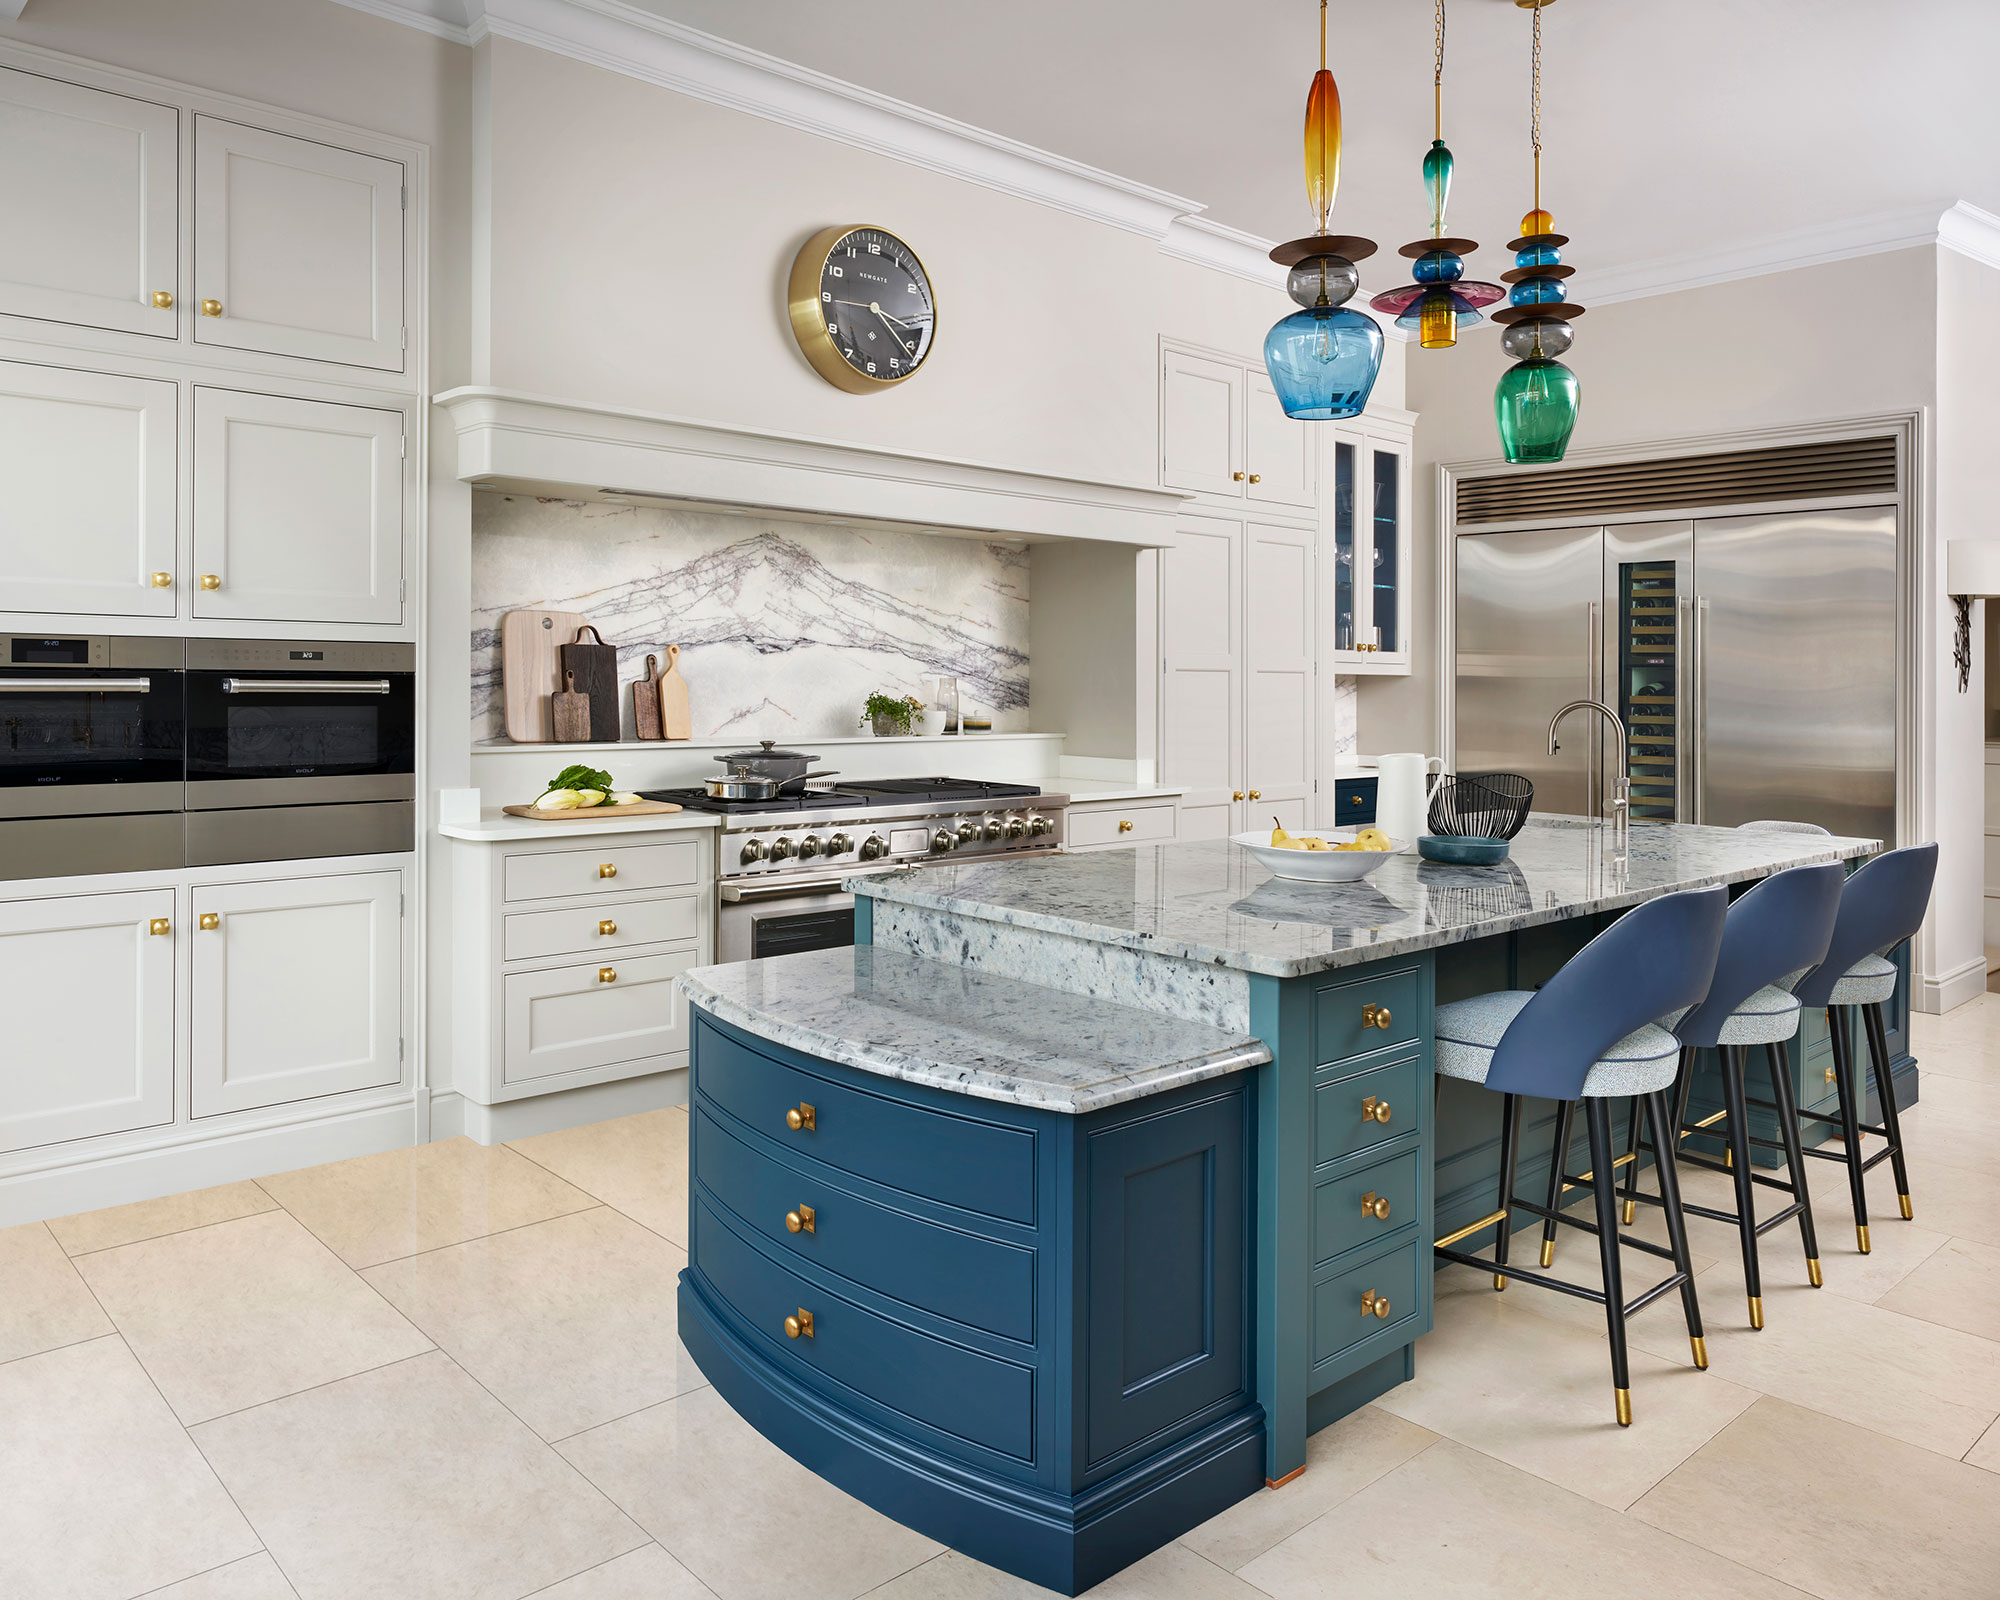 Kitchen Island Lighting Ideas How To Light Up This Prime Spot Homes Gardens